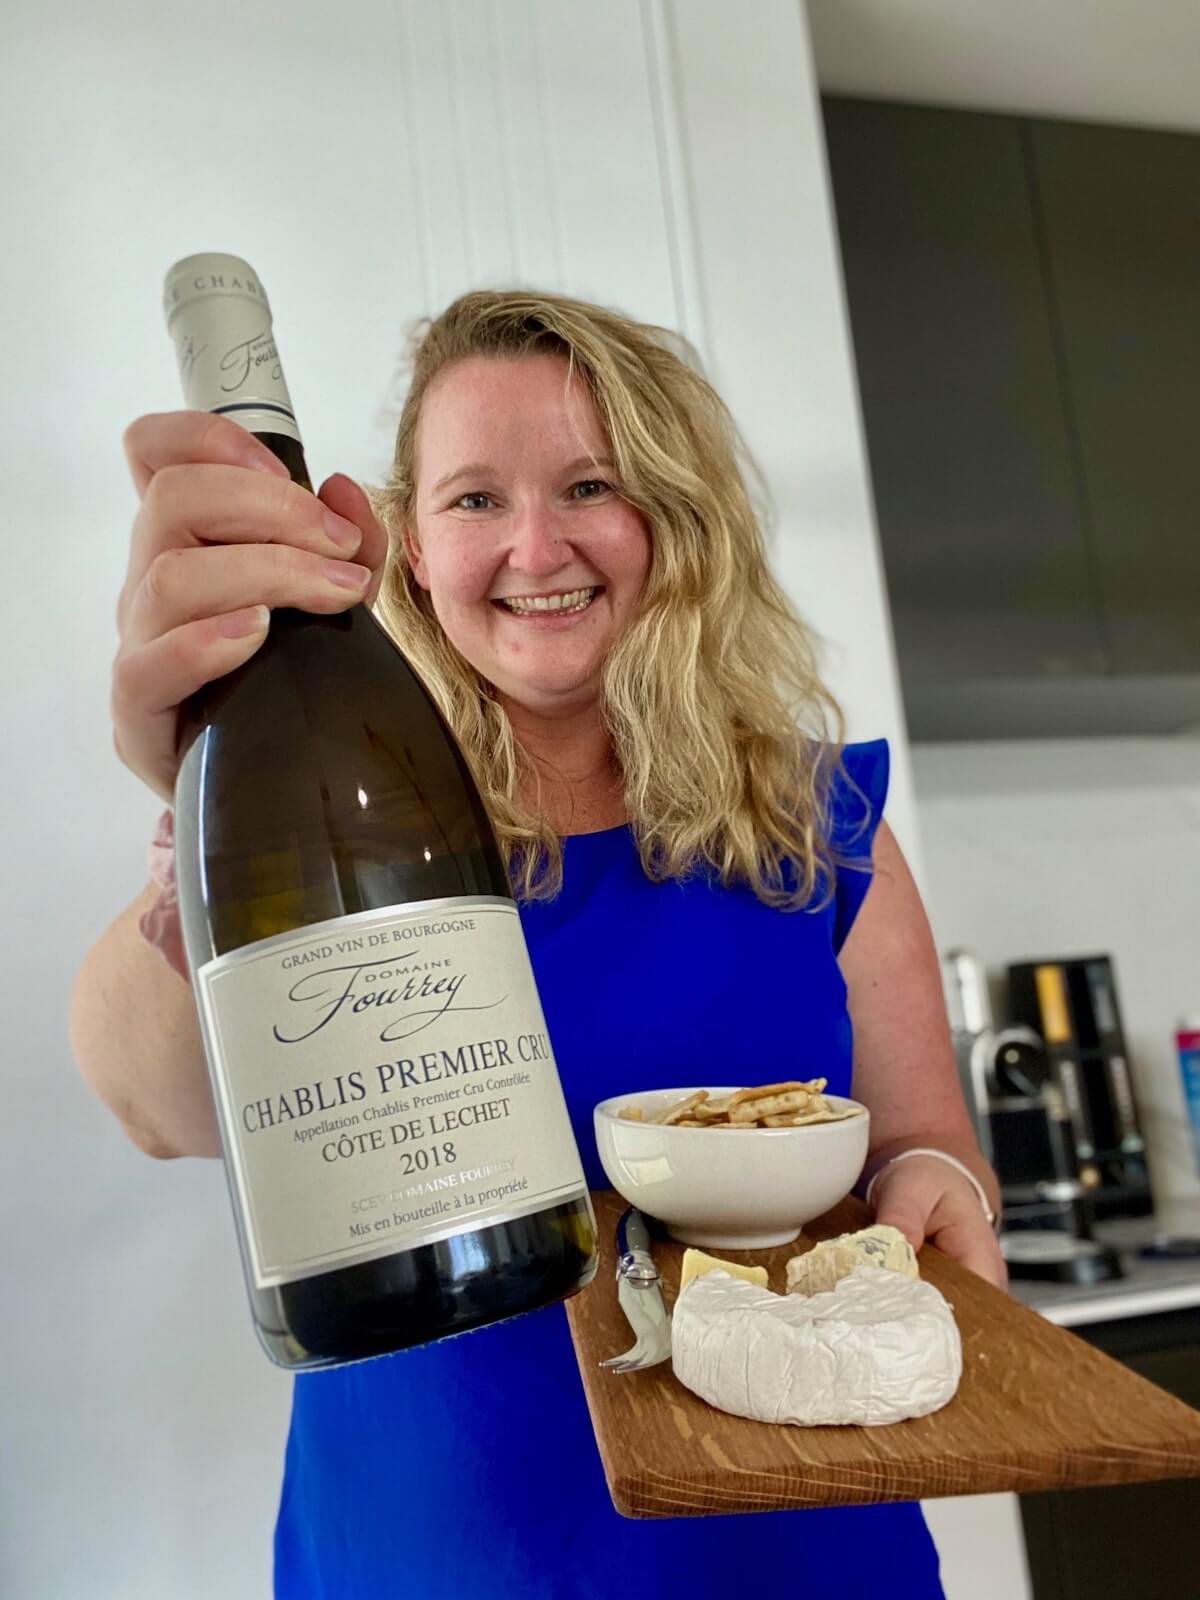 Wine blogger Casey holding a bottle of Domaine Fourrey Premier Cru Chablis from Popsy and JJ and a cheese platter